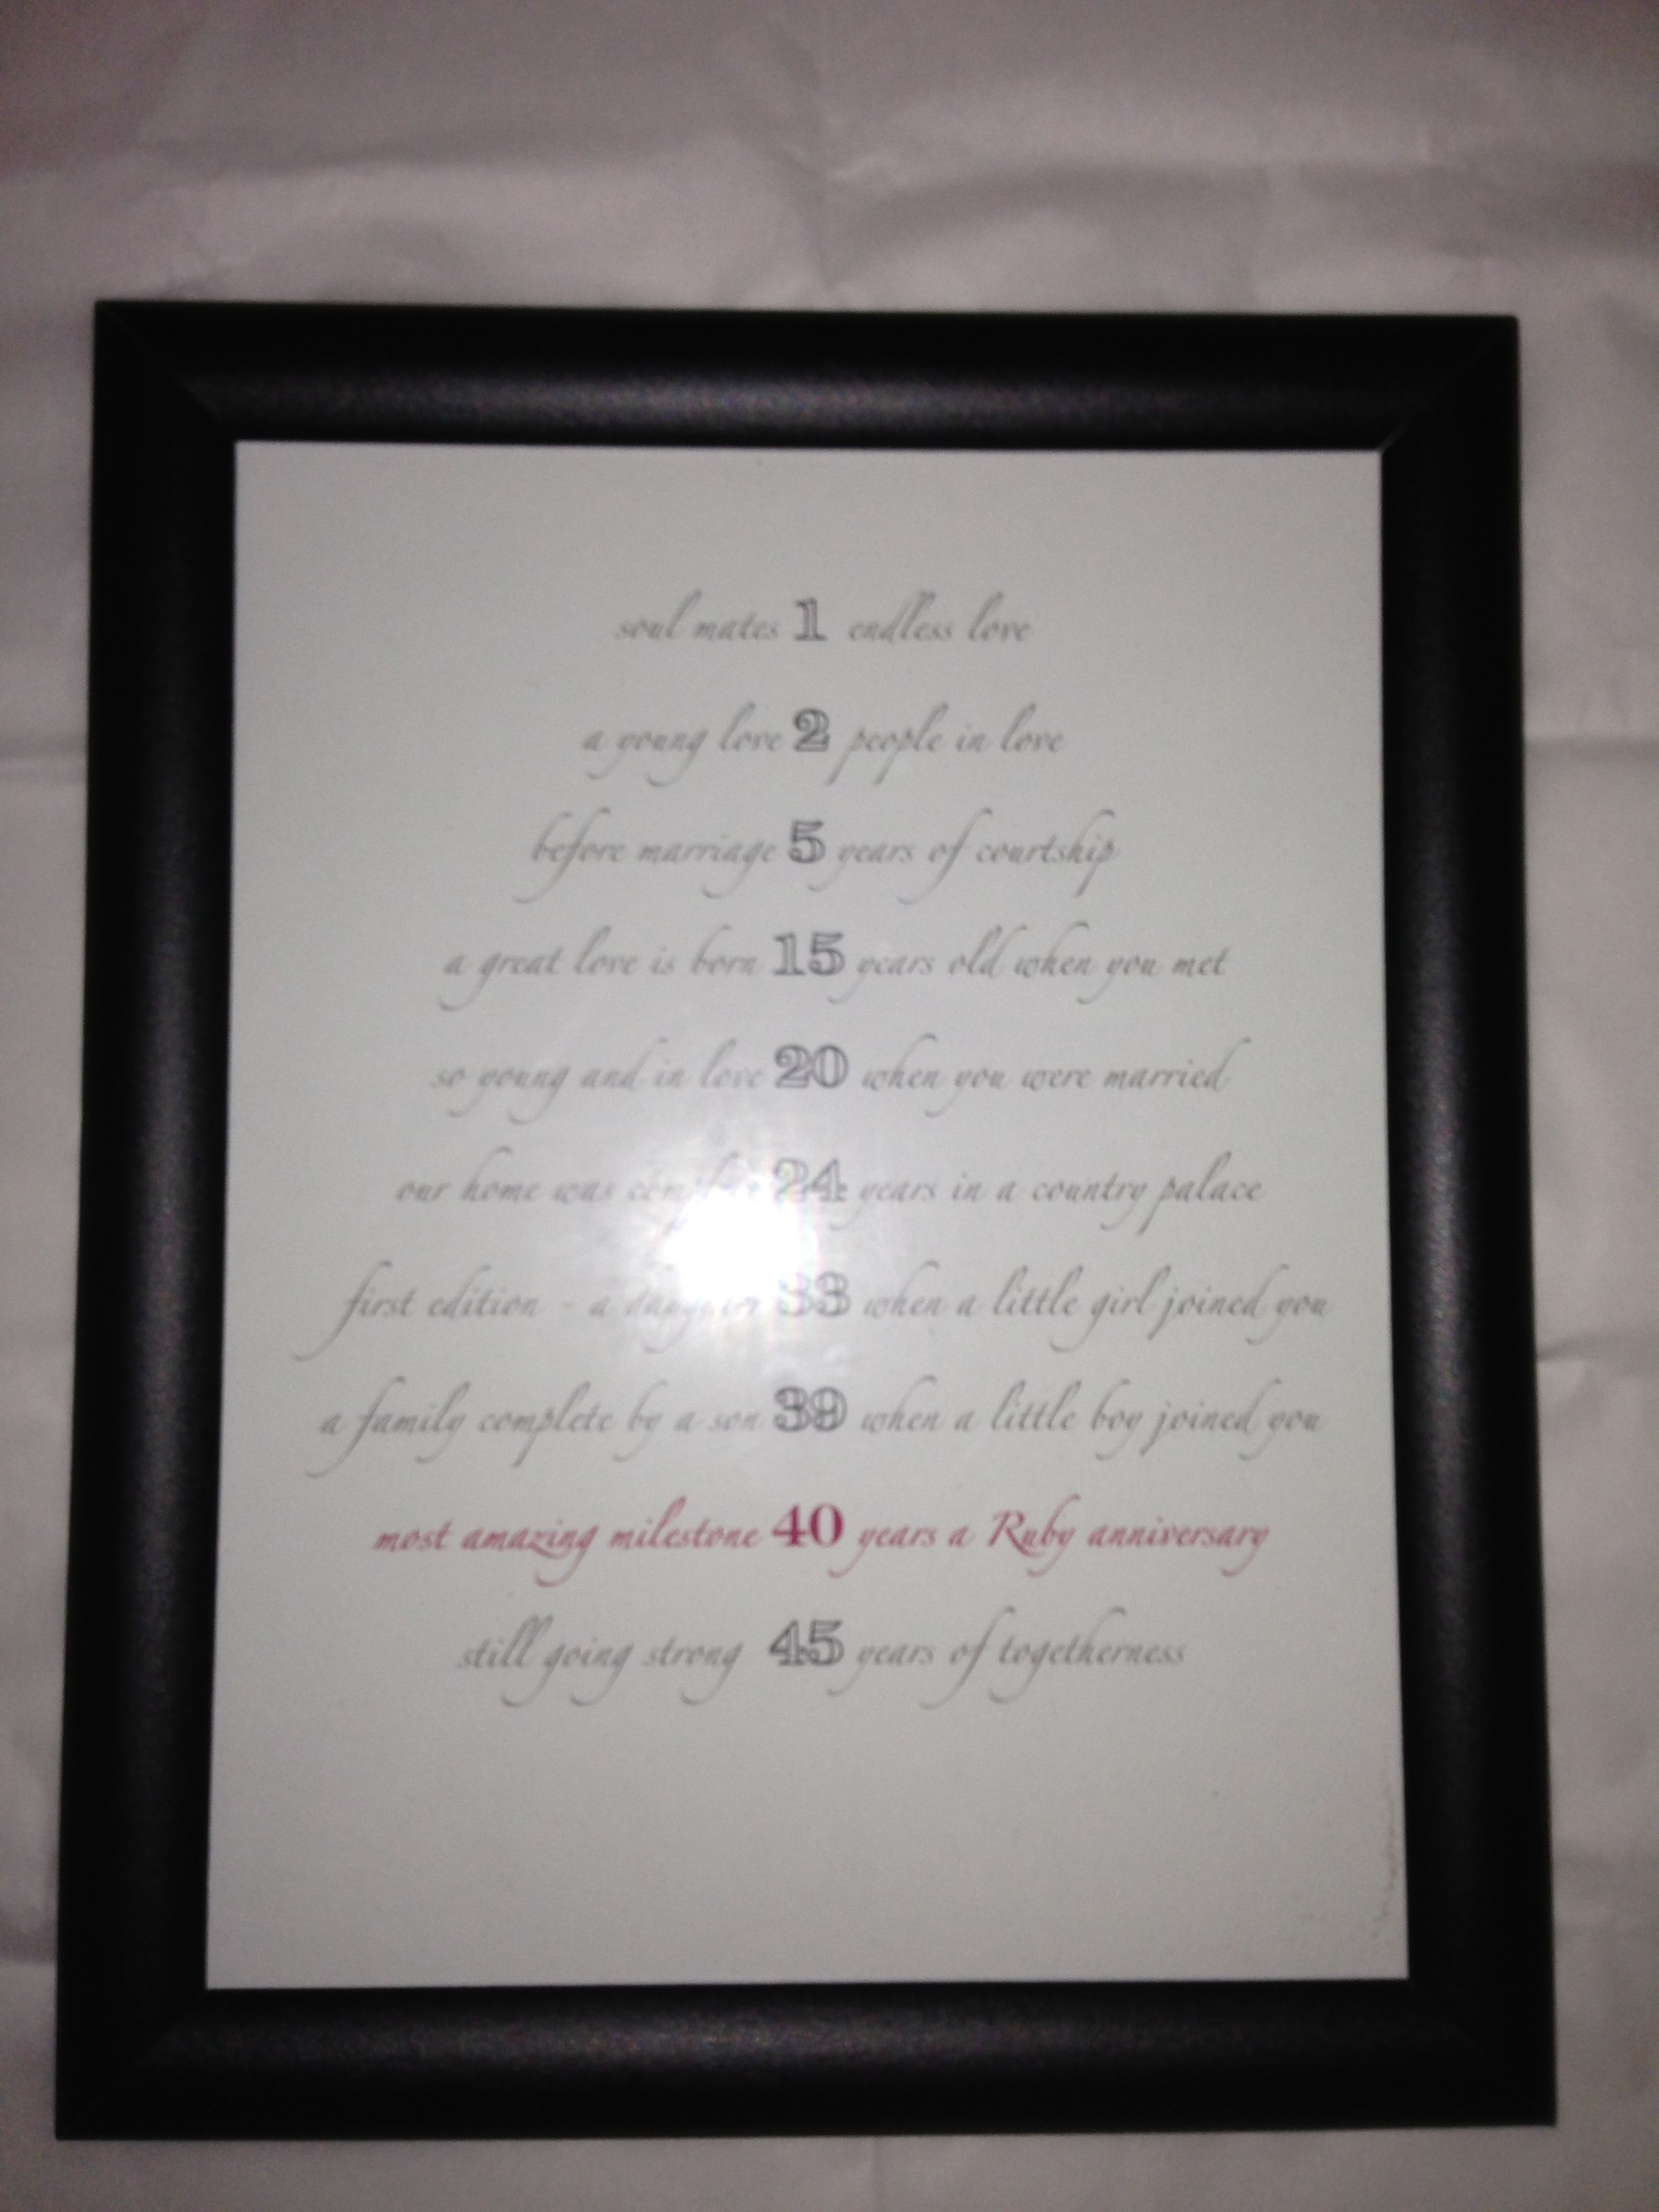 40th Wedding Anniversary Gifts For Parents Ideas : 40Th, Gift Ideas, Dads Anniversary, Anniversary Ideas, 40Th Wedding ...